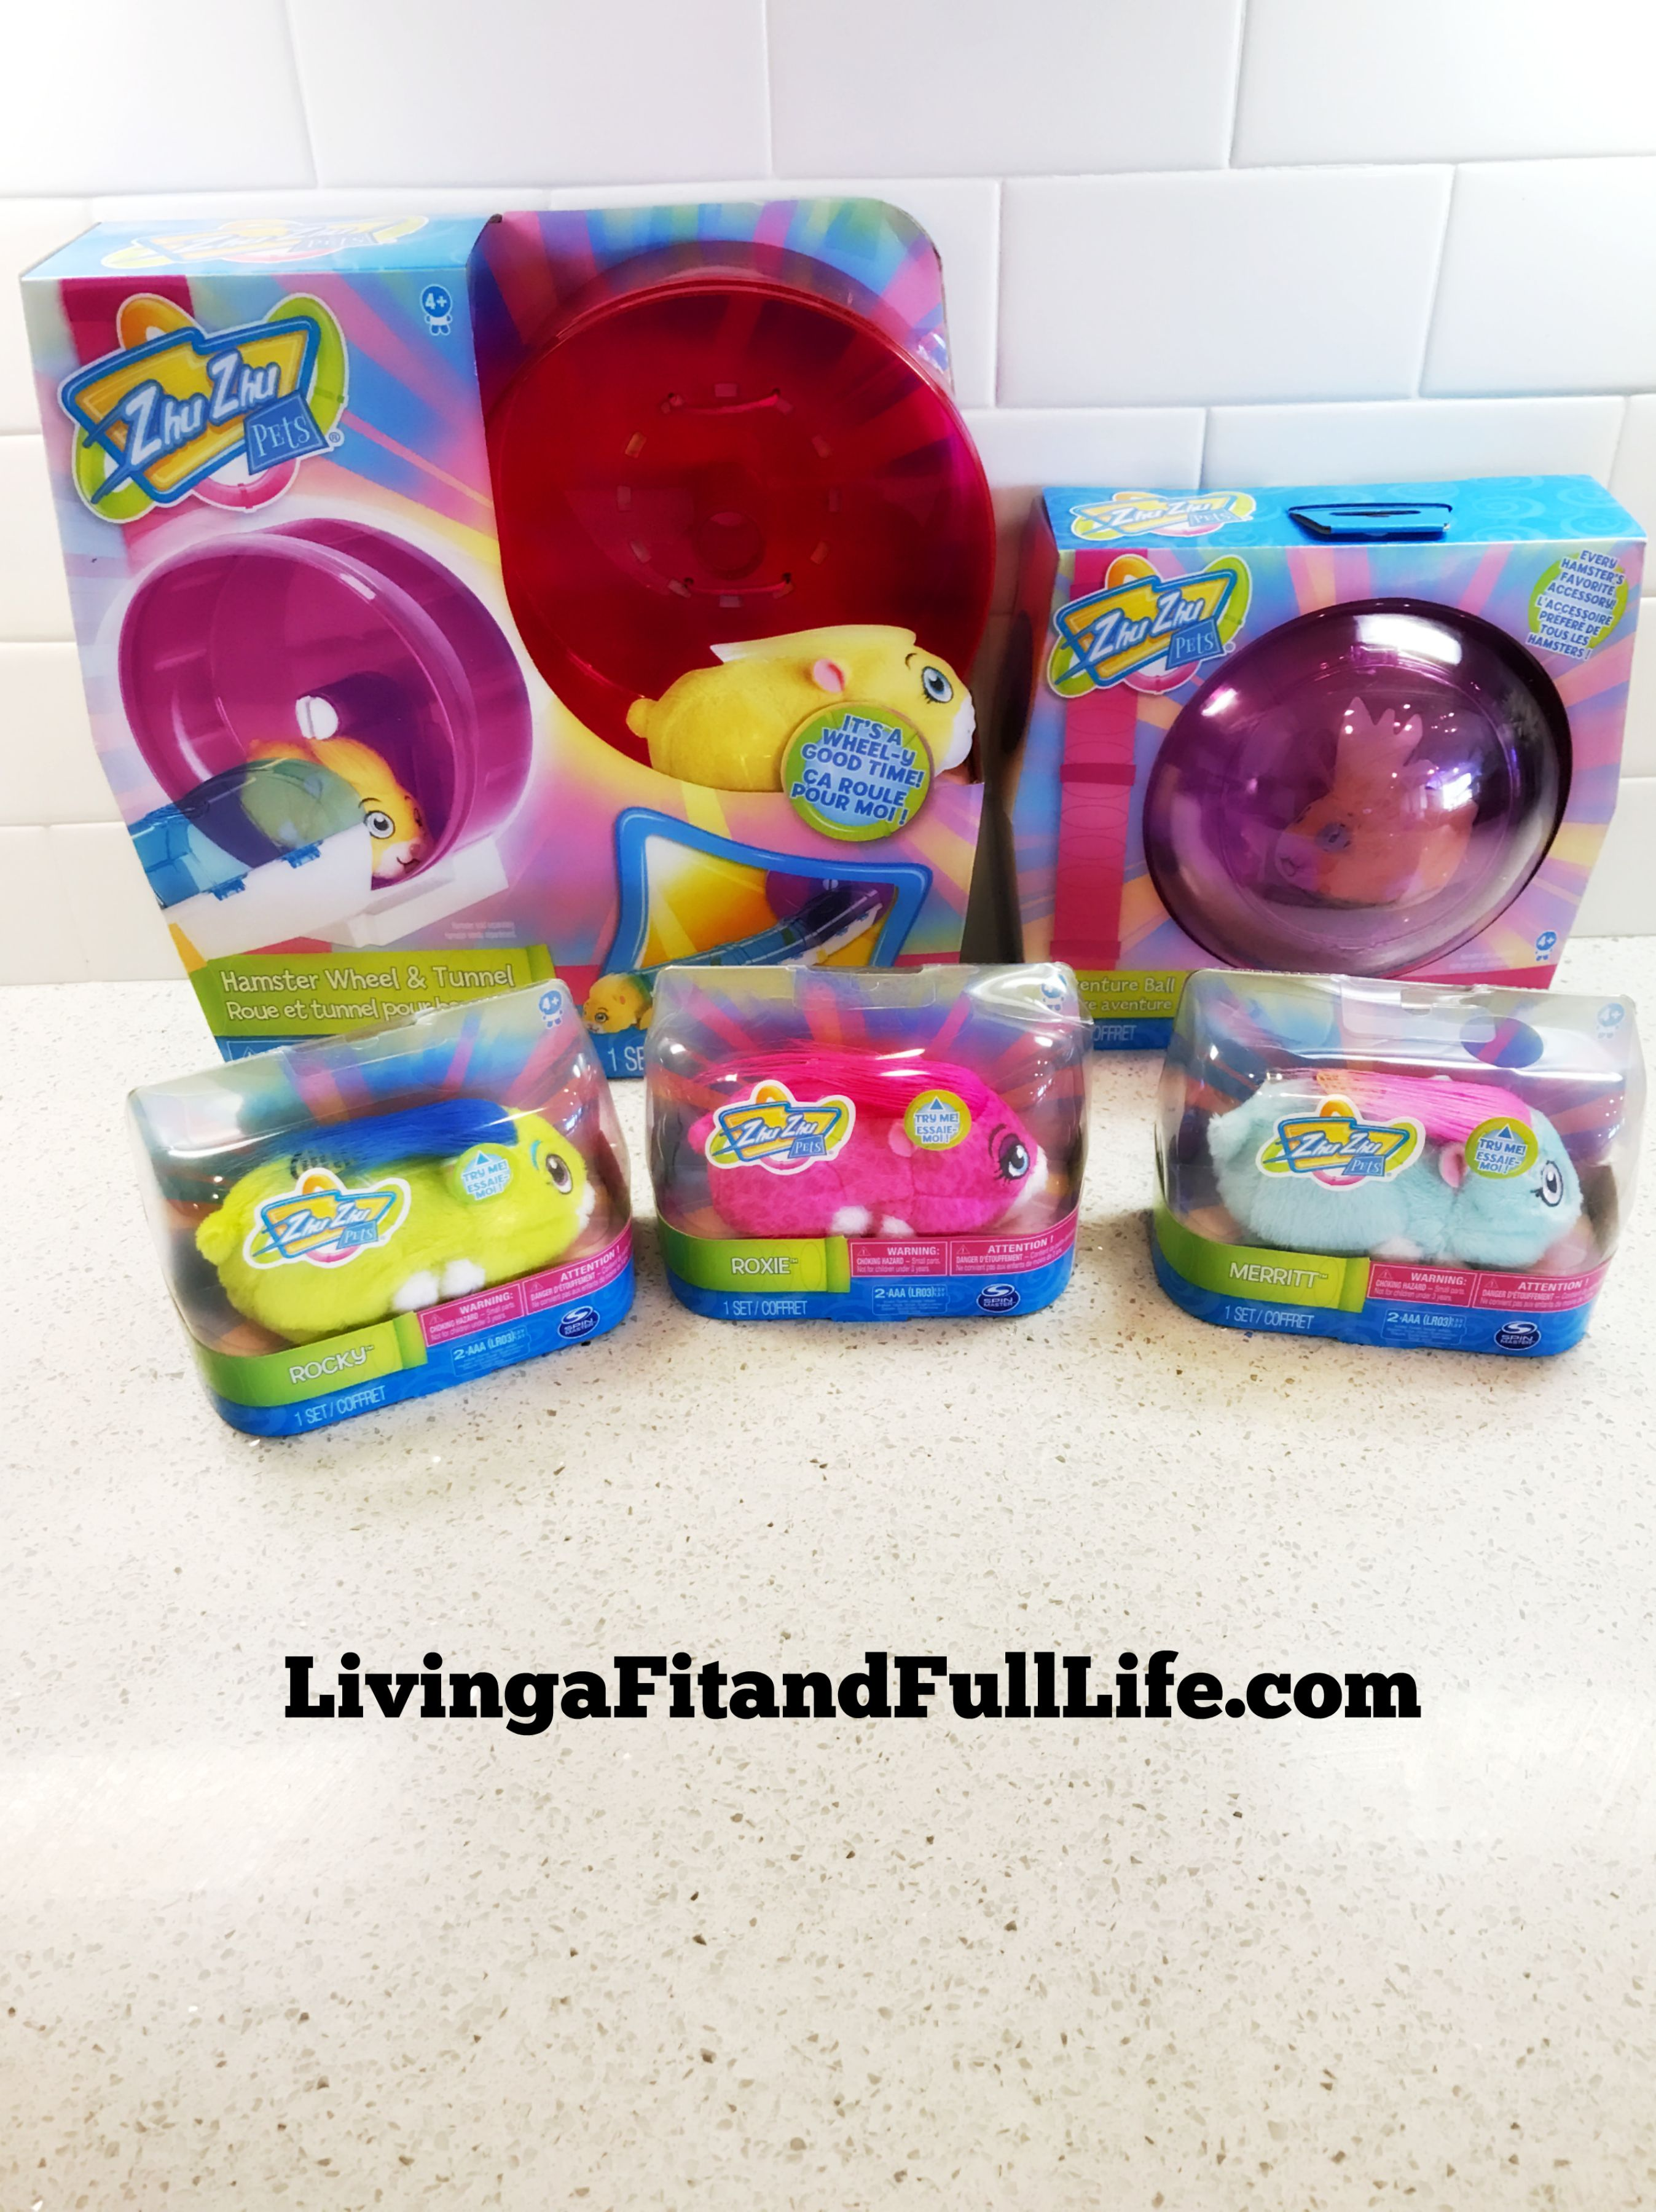 Make Way For Zhu Zhu Pets Hamsters And Accessories From Spinmaster